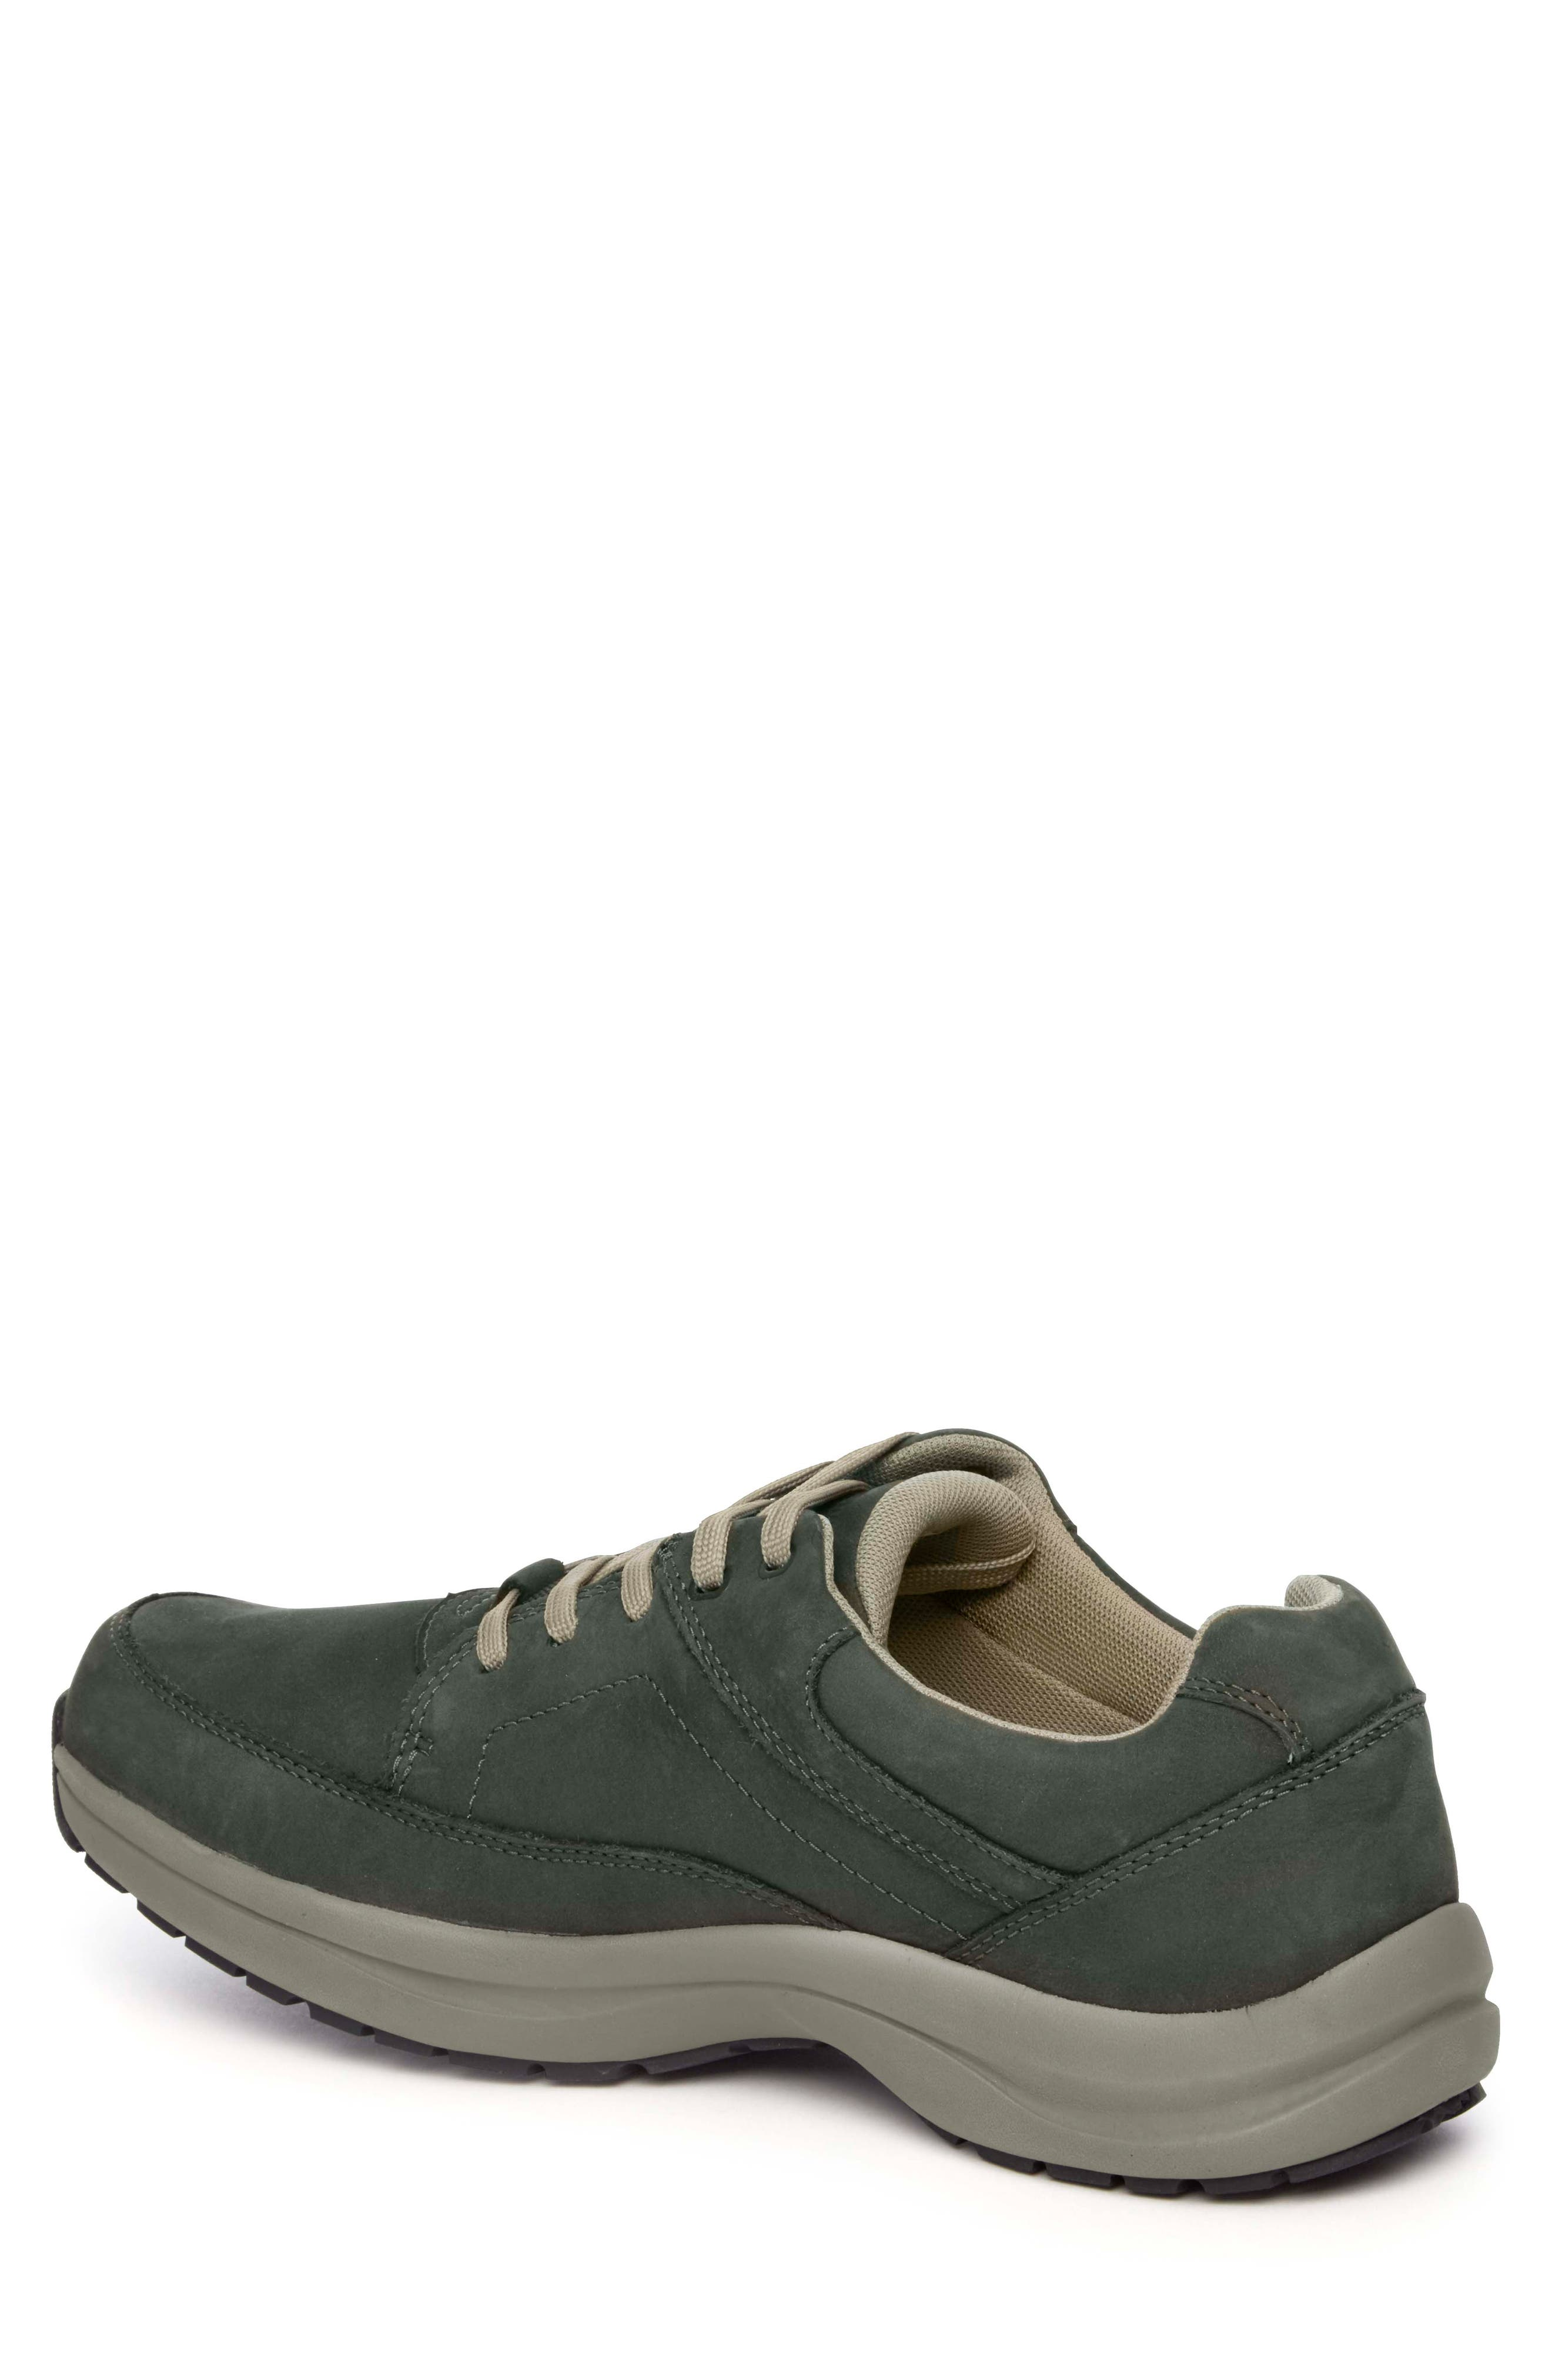 DUNHAM, Stephen-DUN Waterproof Derby, Alternate thumbnail 2, color, GREEN LEATHER